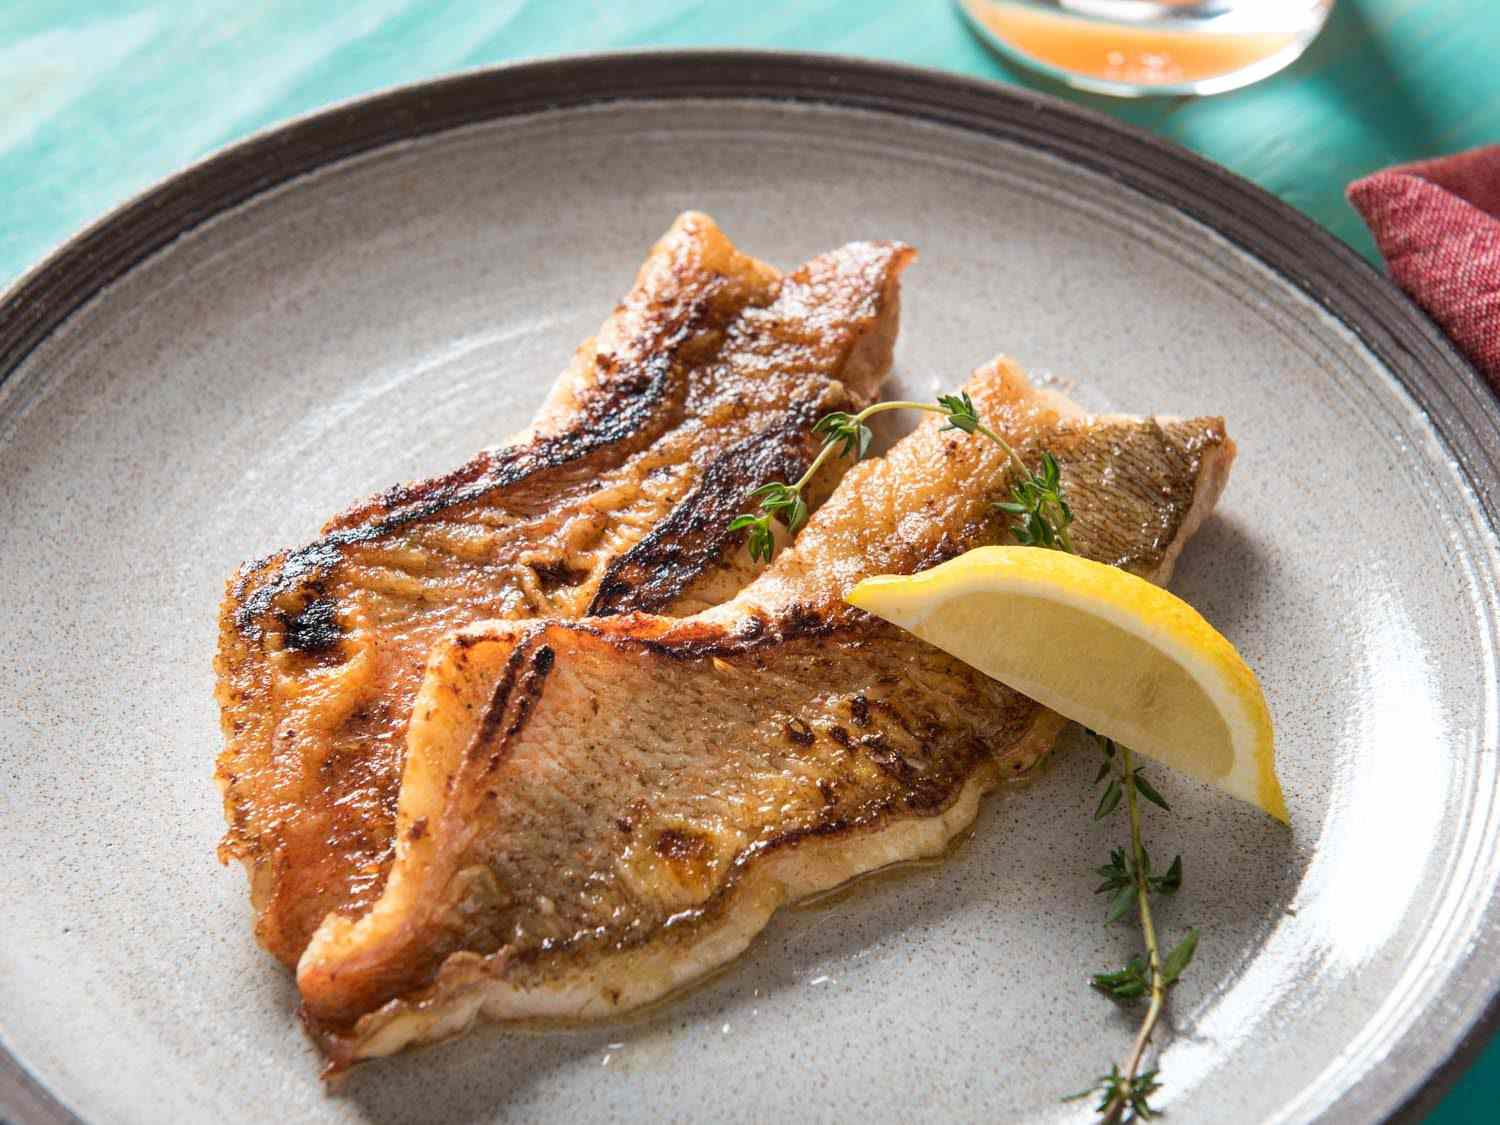 Plate of butter based fish